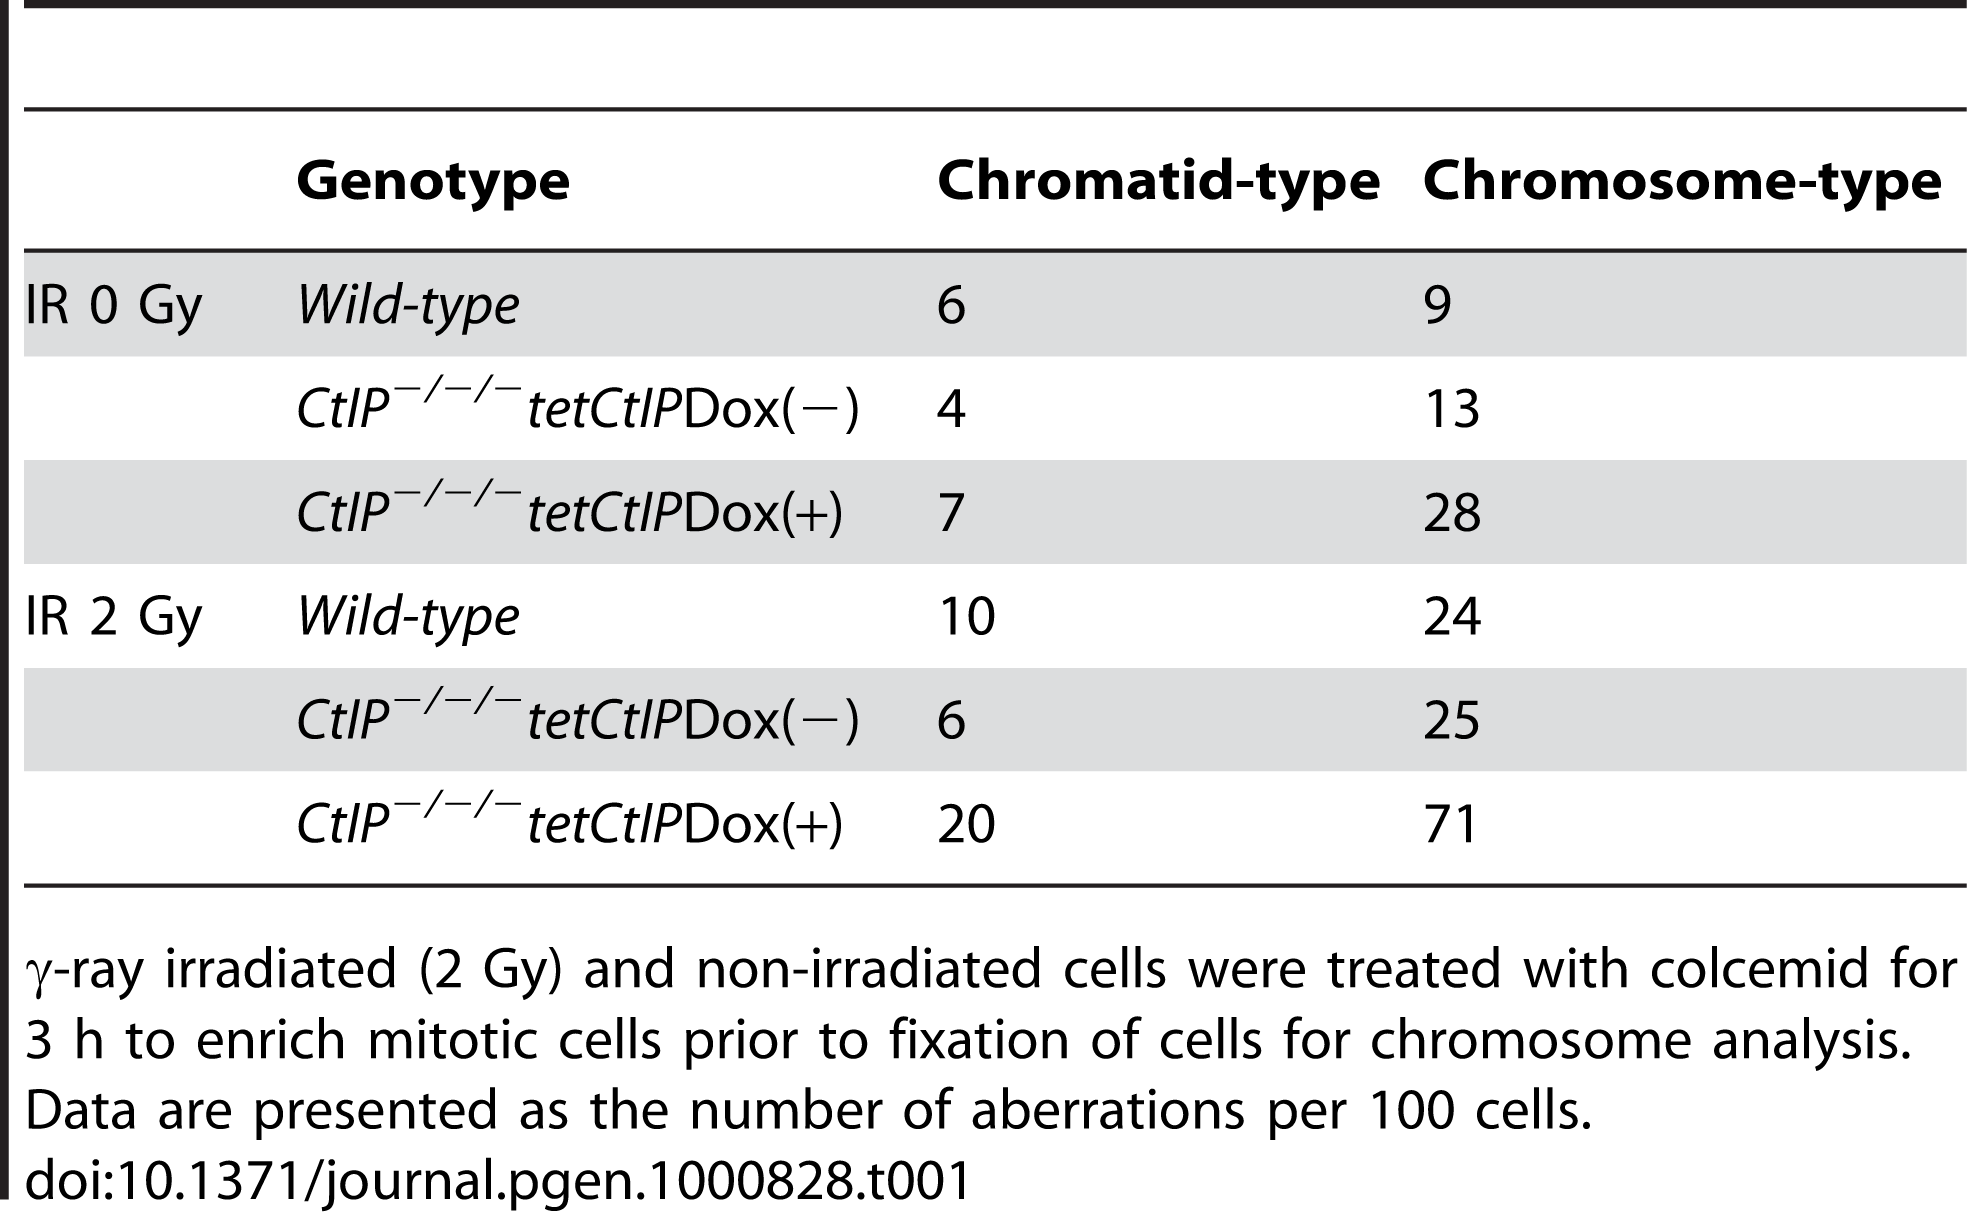 Chromosomal aberrations in <i>CtIP<sup>−/−/−</sup>tetCtIP</i> mutants.